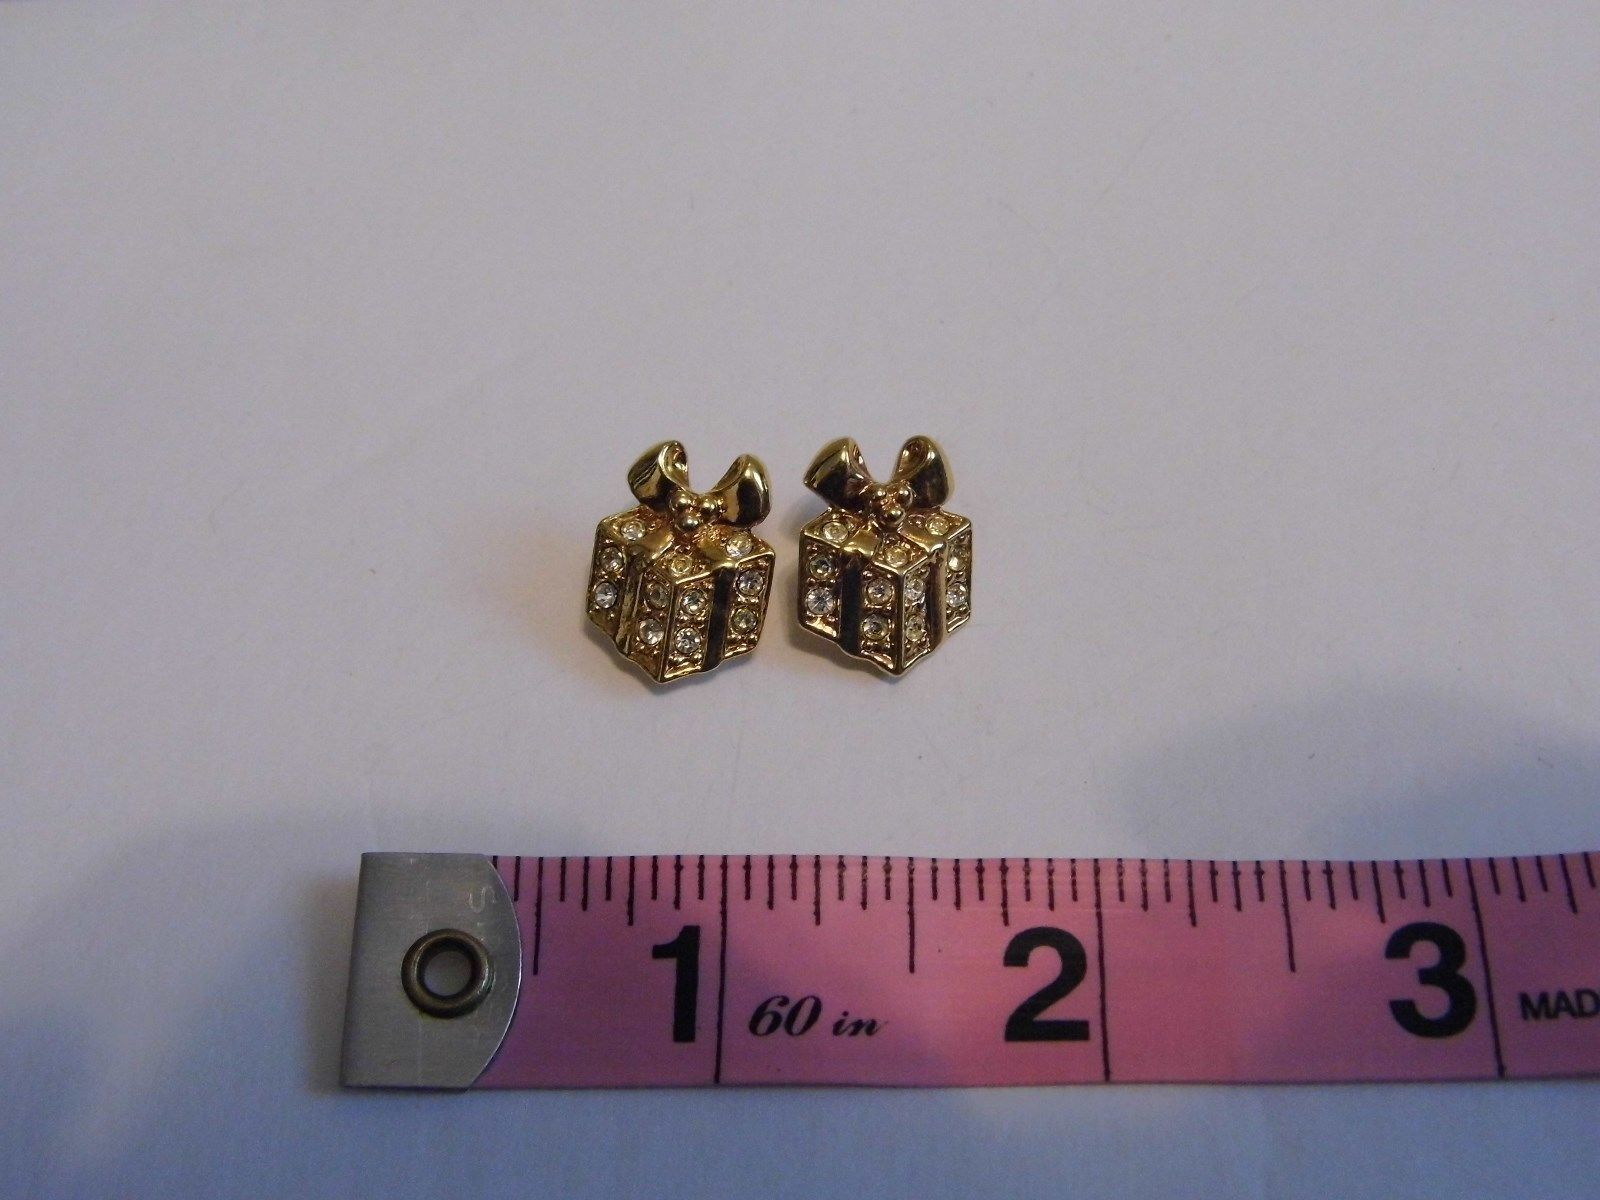 VTG Avon Pair Pierced Earrings Holiday Present Gold Tone Costume Fashion Jewelry